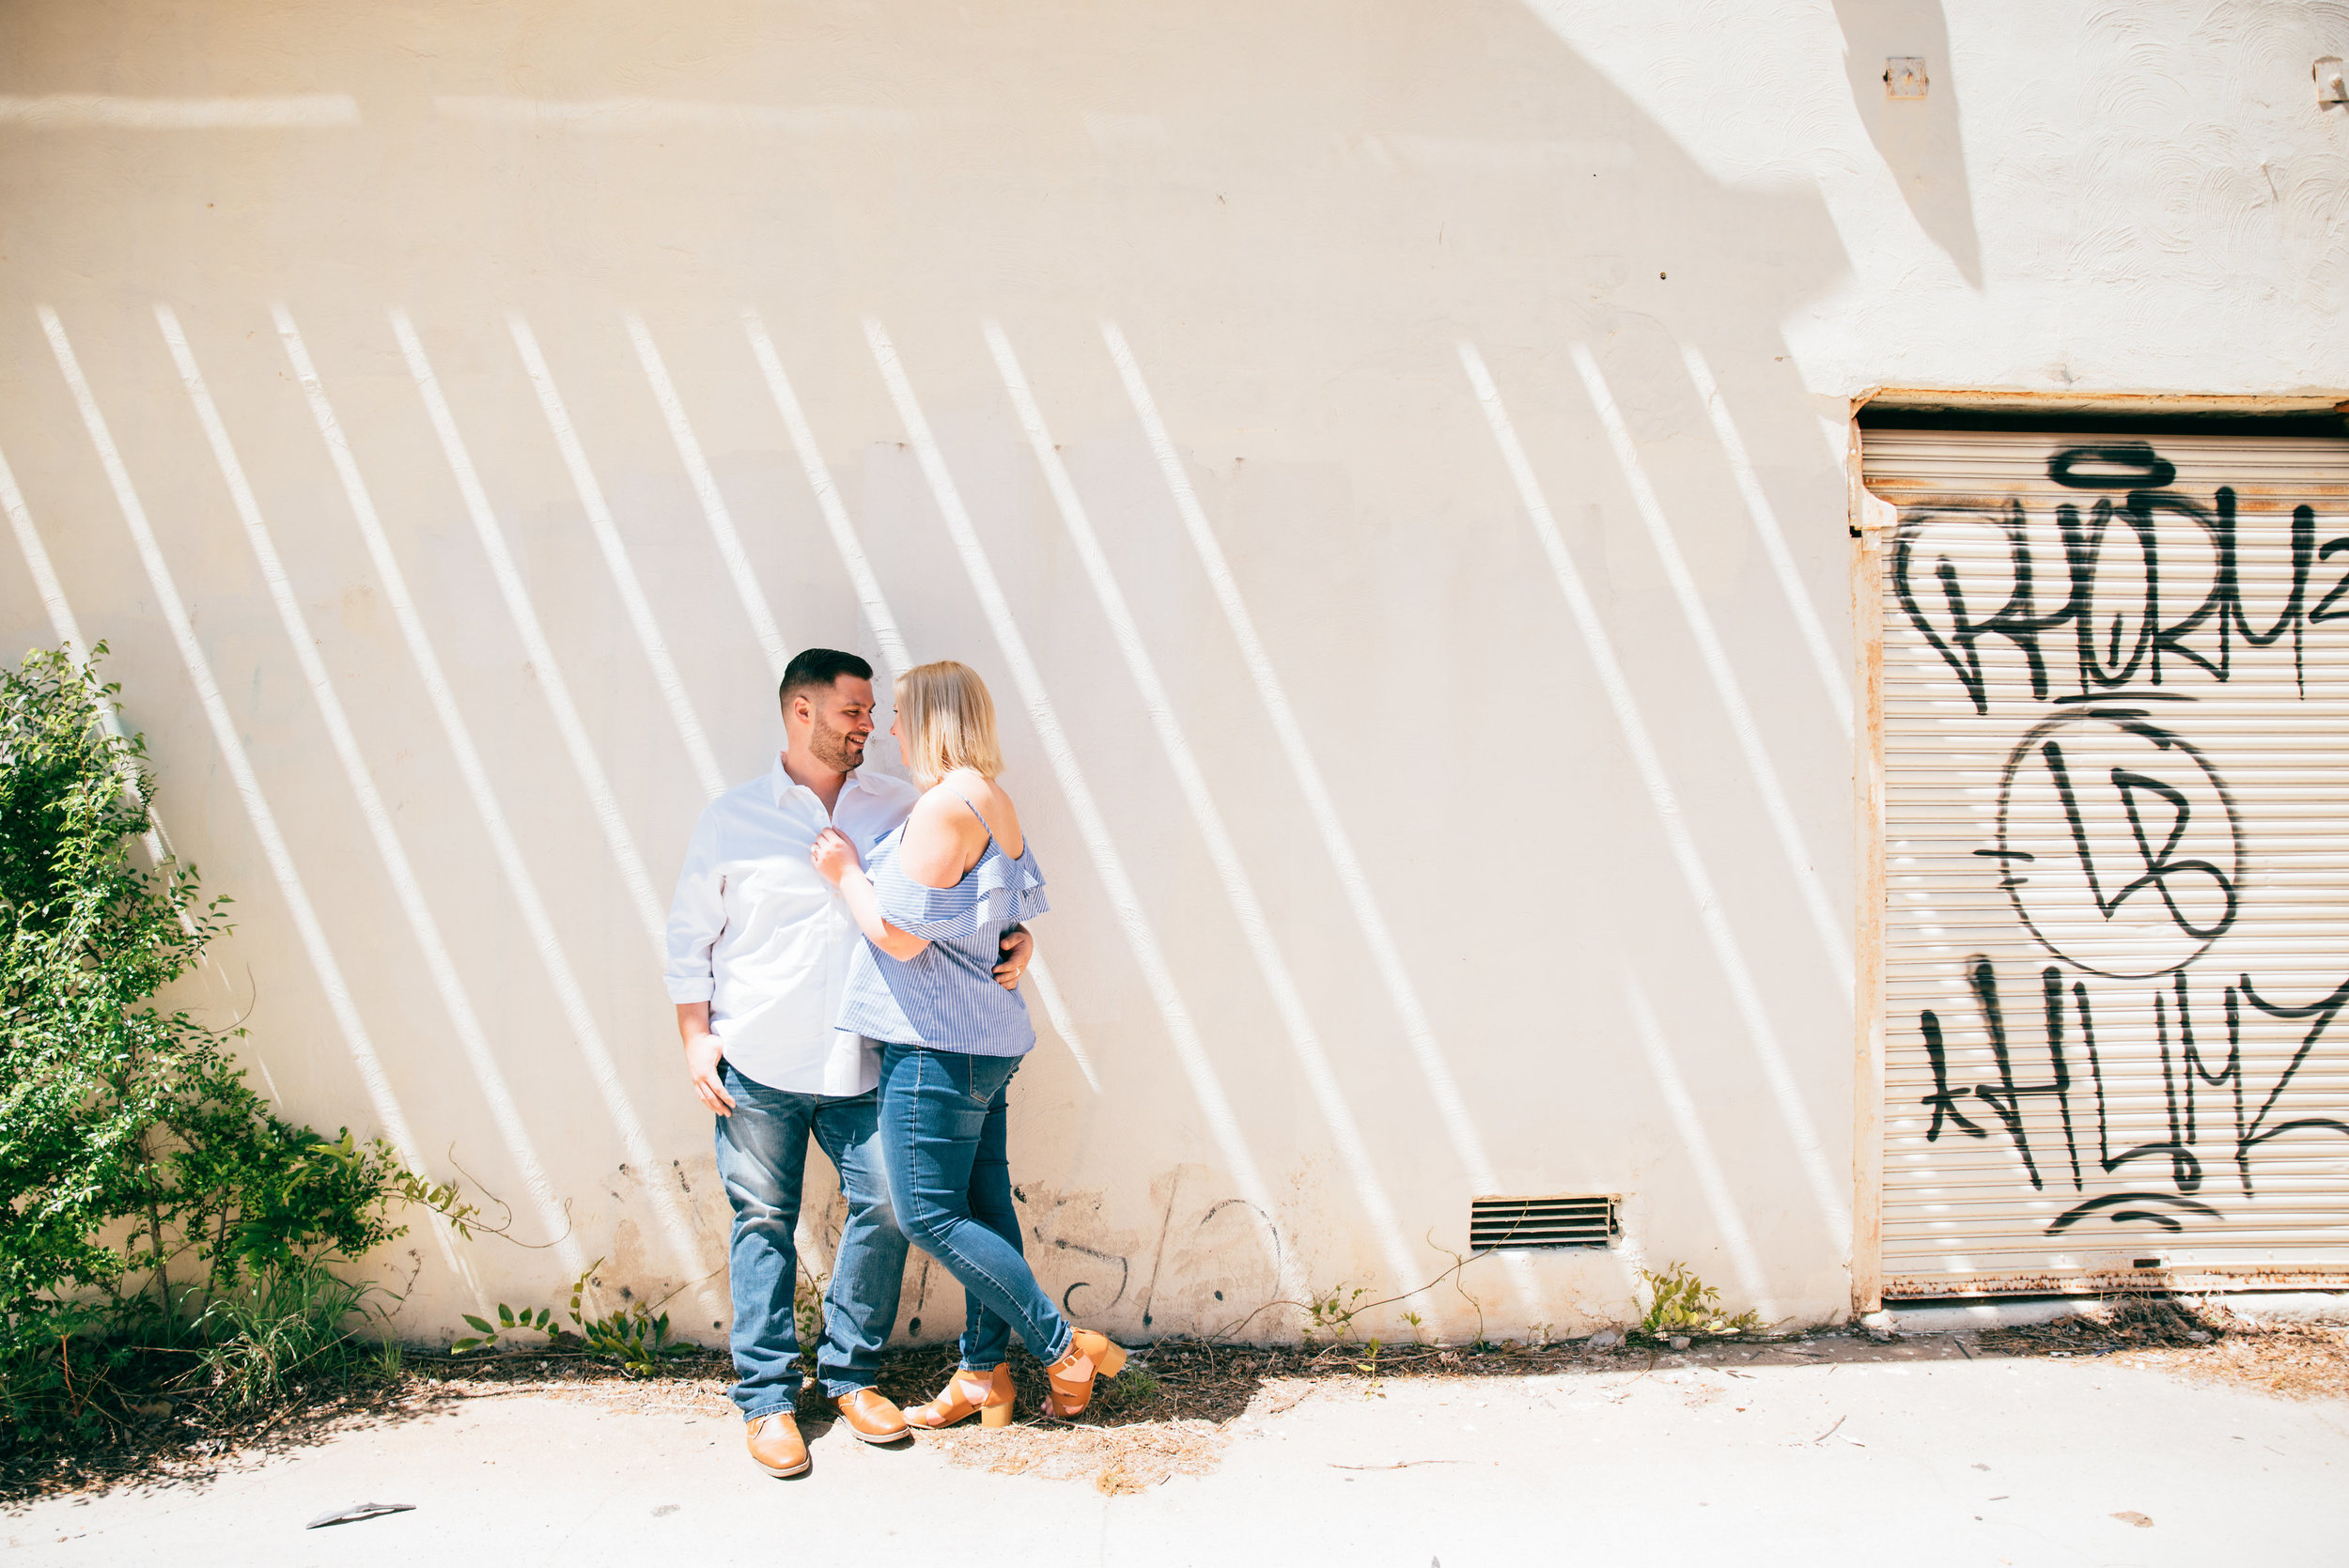 downtown raleigh engagement - north carolina wedding photographer - raleigh wedding photographer